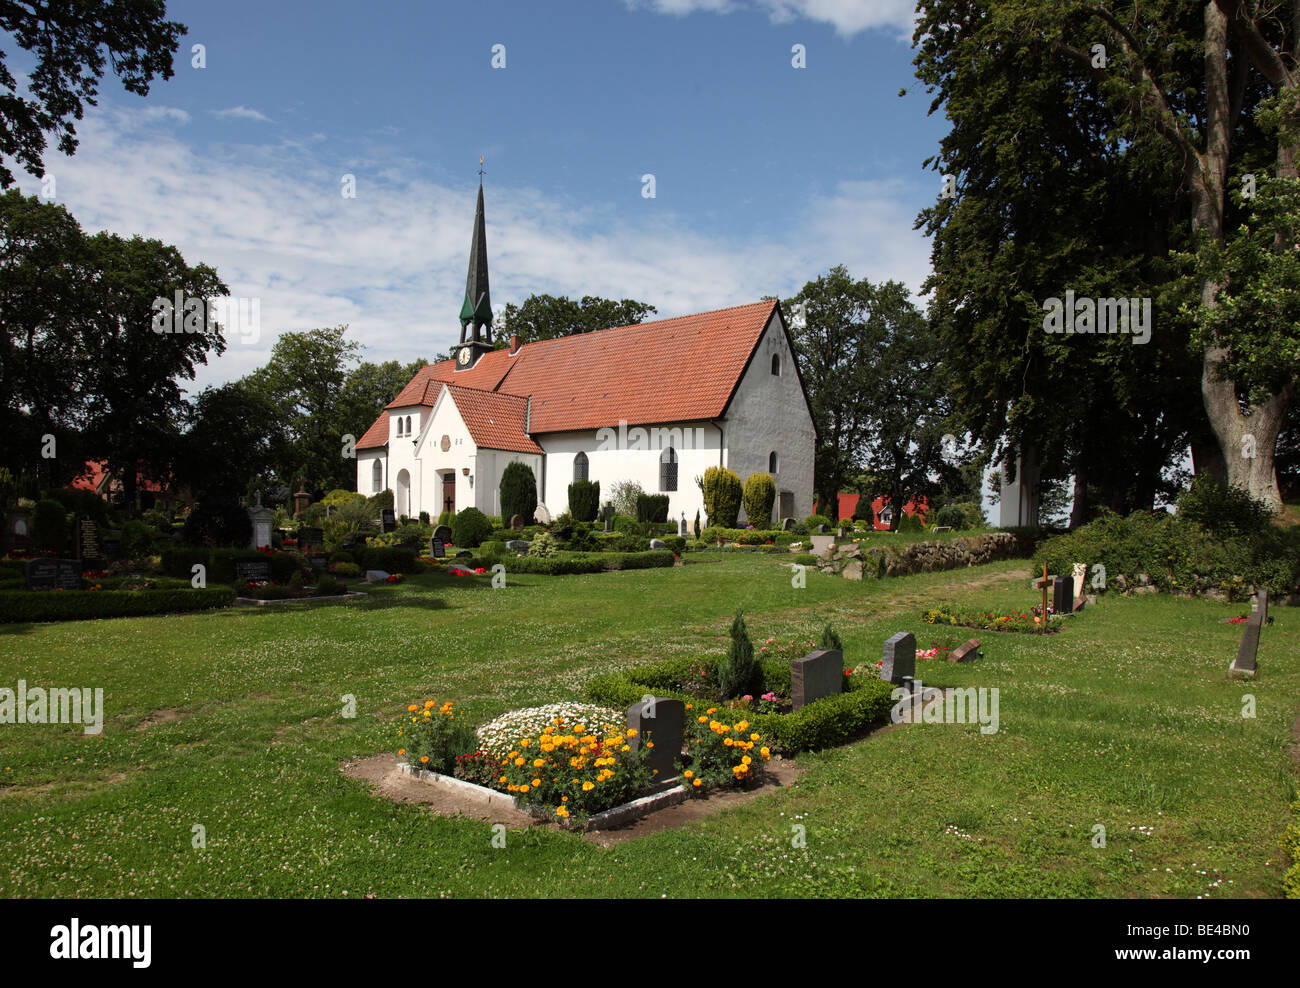 St. Wilhadi Church, ULSNIS, ANGELN, SCHLESWIG-HOLSTEIN, Germany - Stock Image